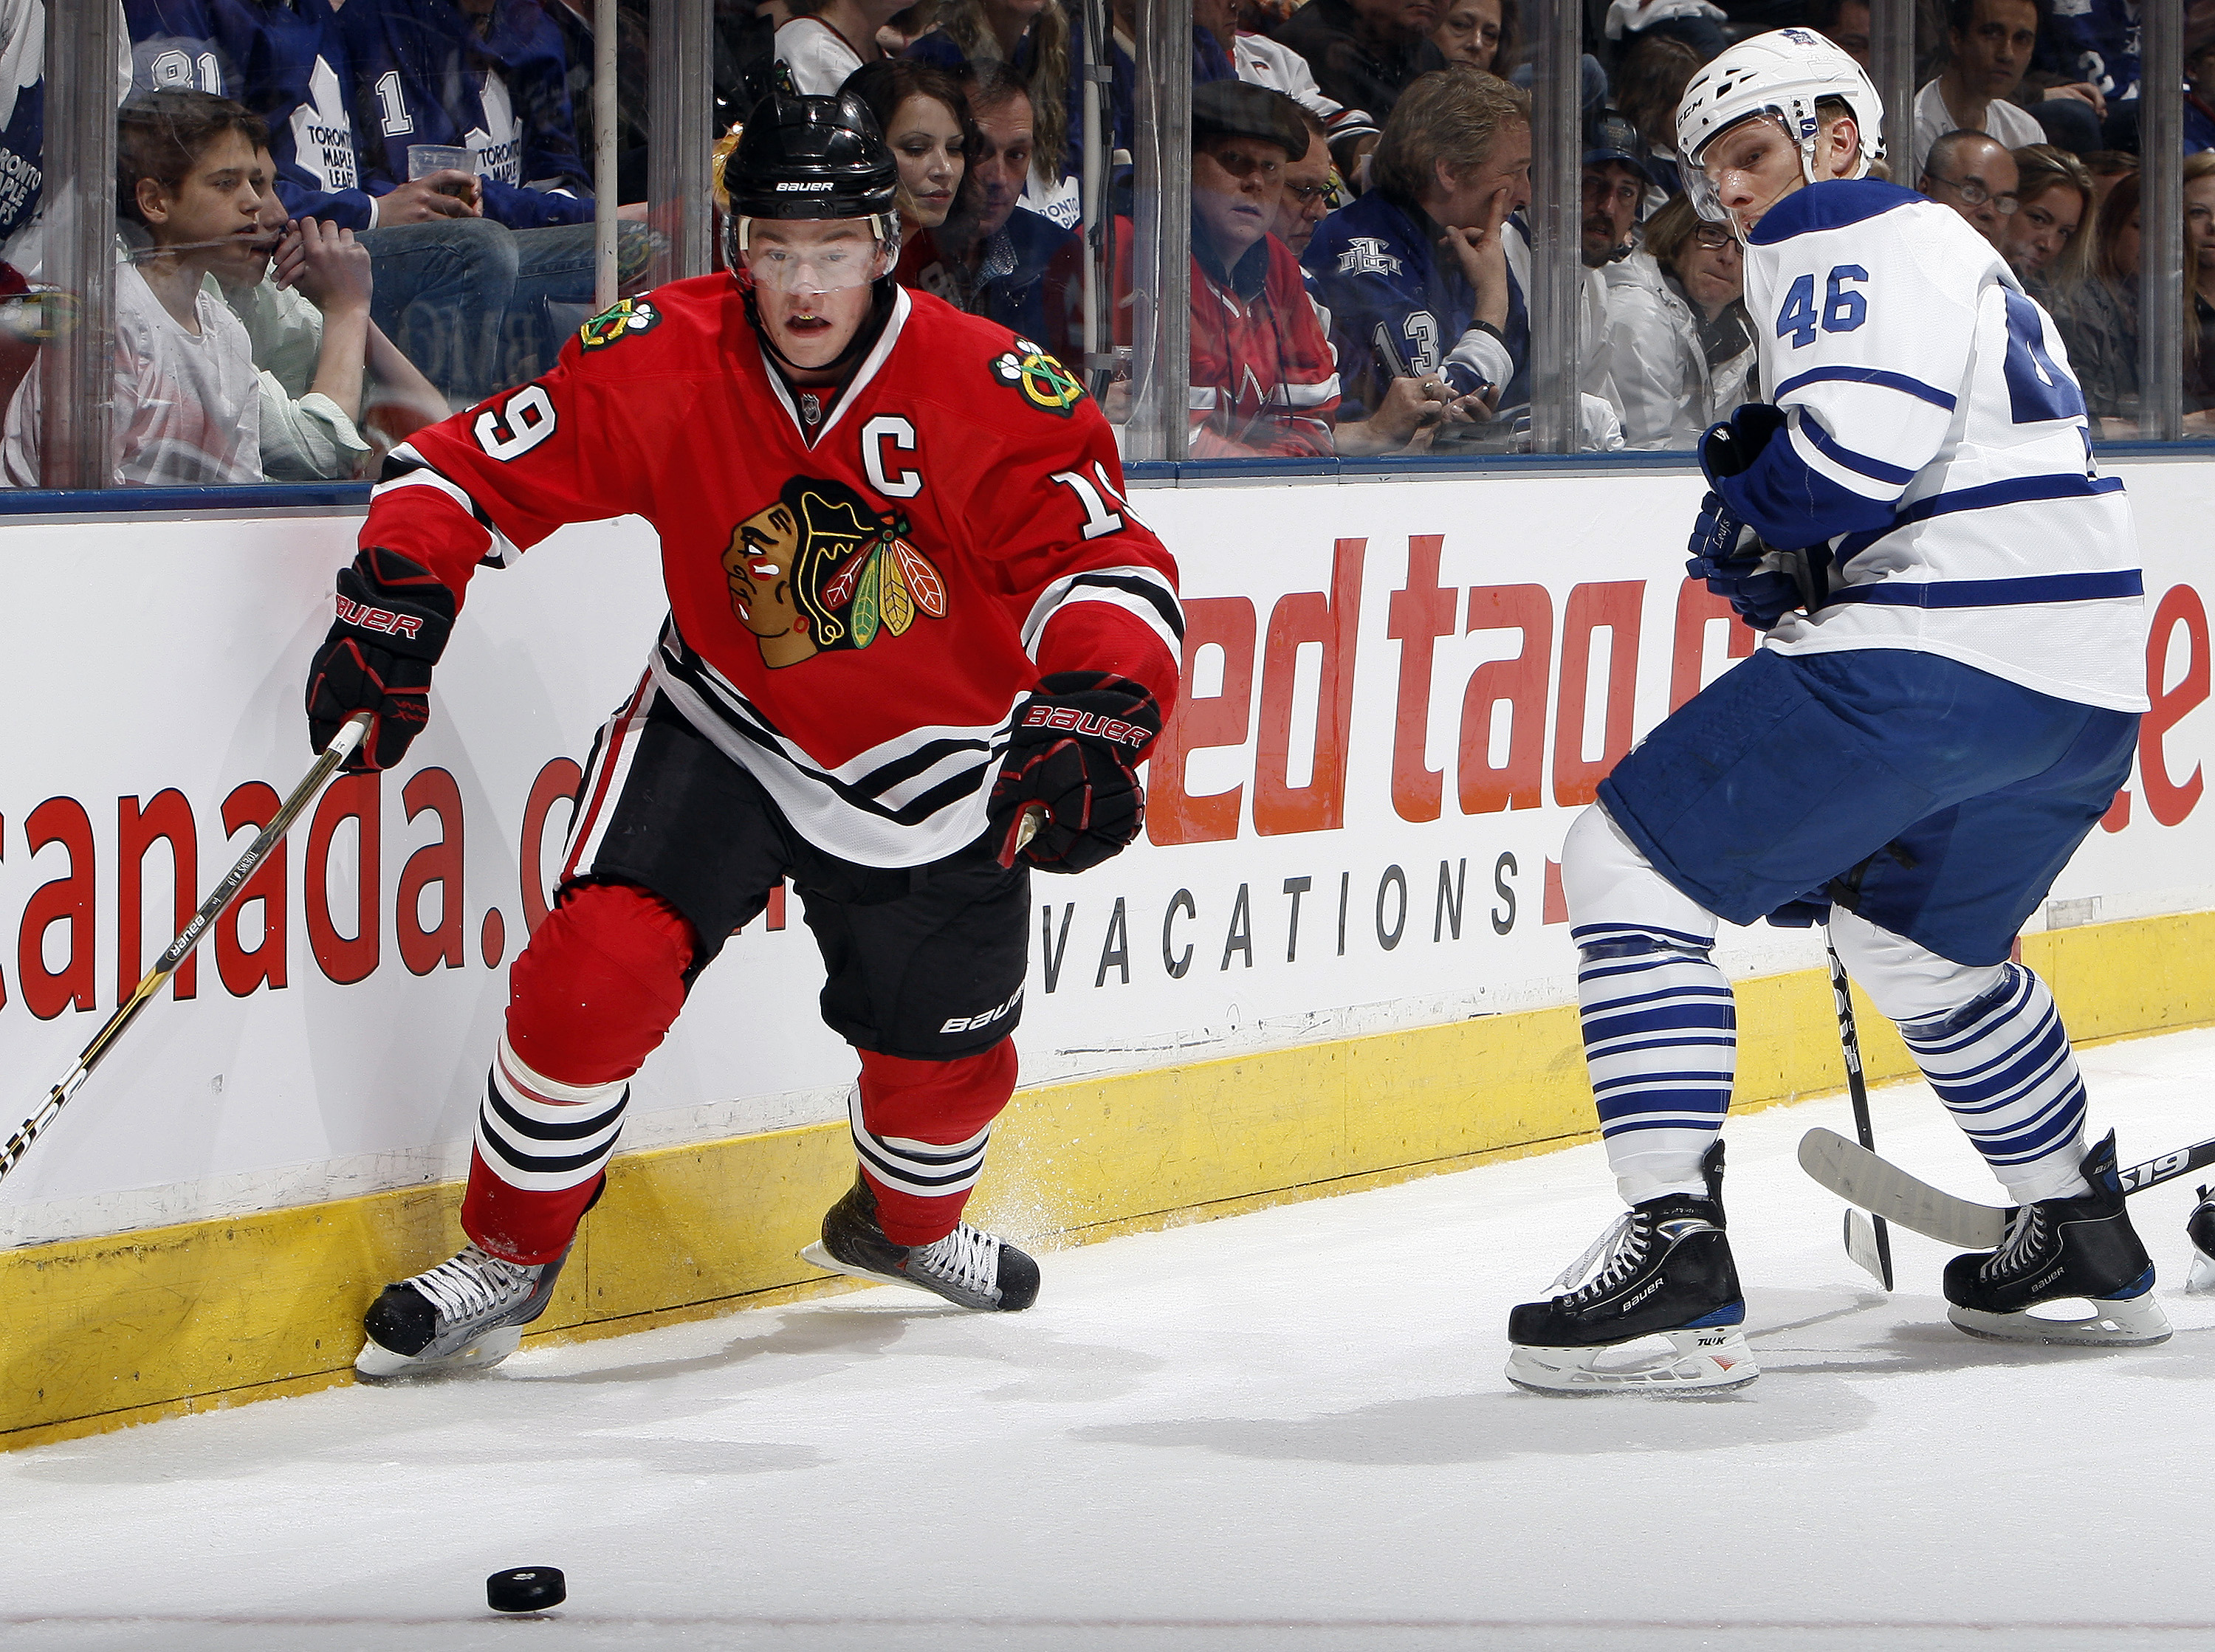 TORONTO, CANADA - MARCH 5: Joey Crabb #46 of the Toronto Maple Leafs battles for the puck against Jonathan Toews #19 of the Chicago Blackhawks during game action at the Air Canada Centre March 5, 2011 in Toronto, Ontario, Canada. (Photo by Abelimages/Gett